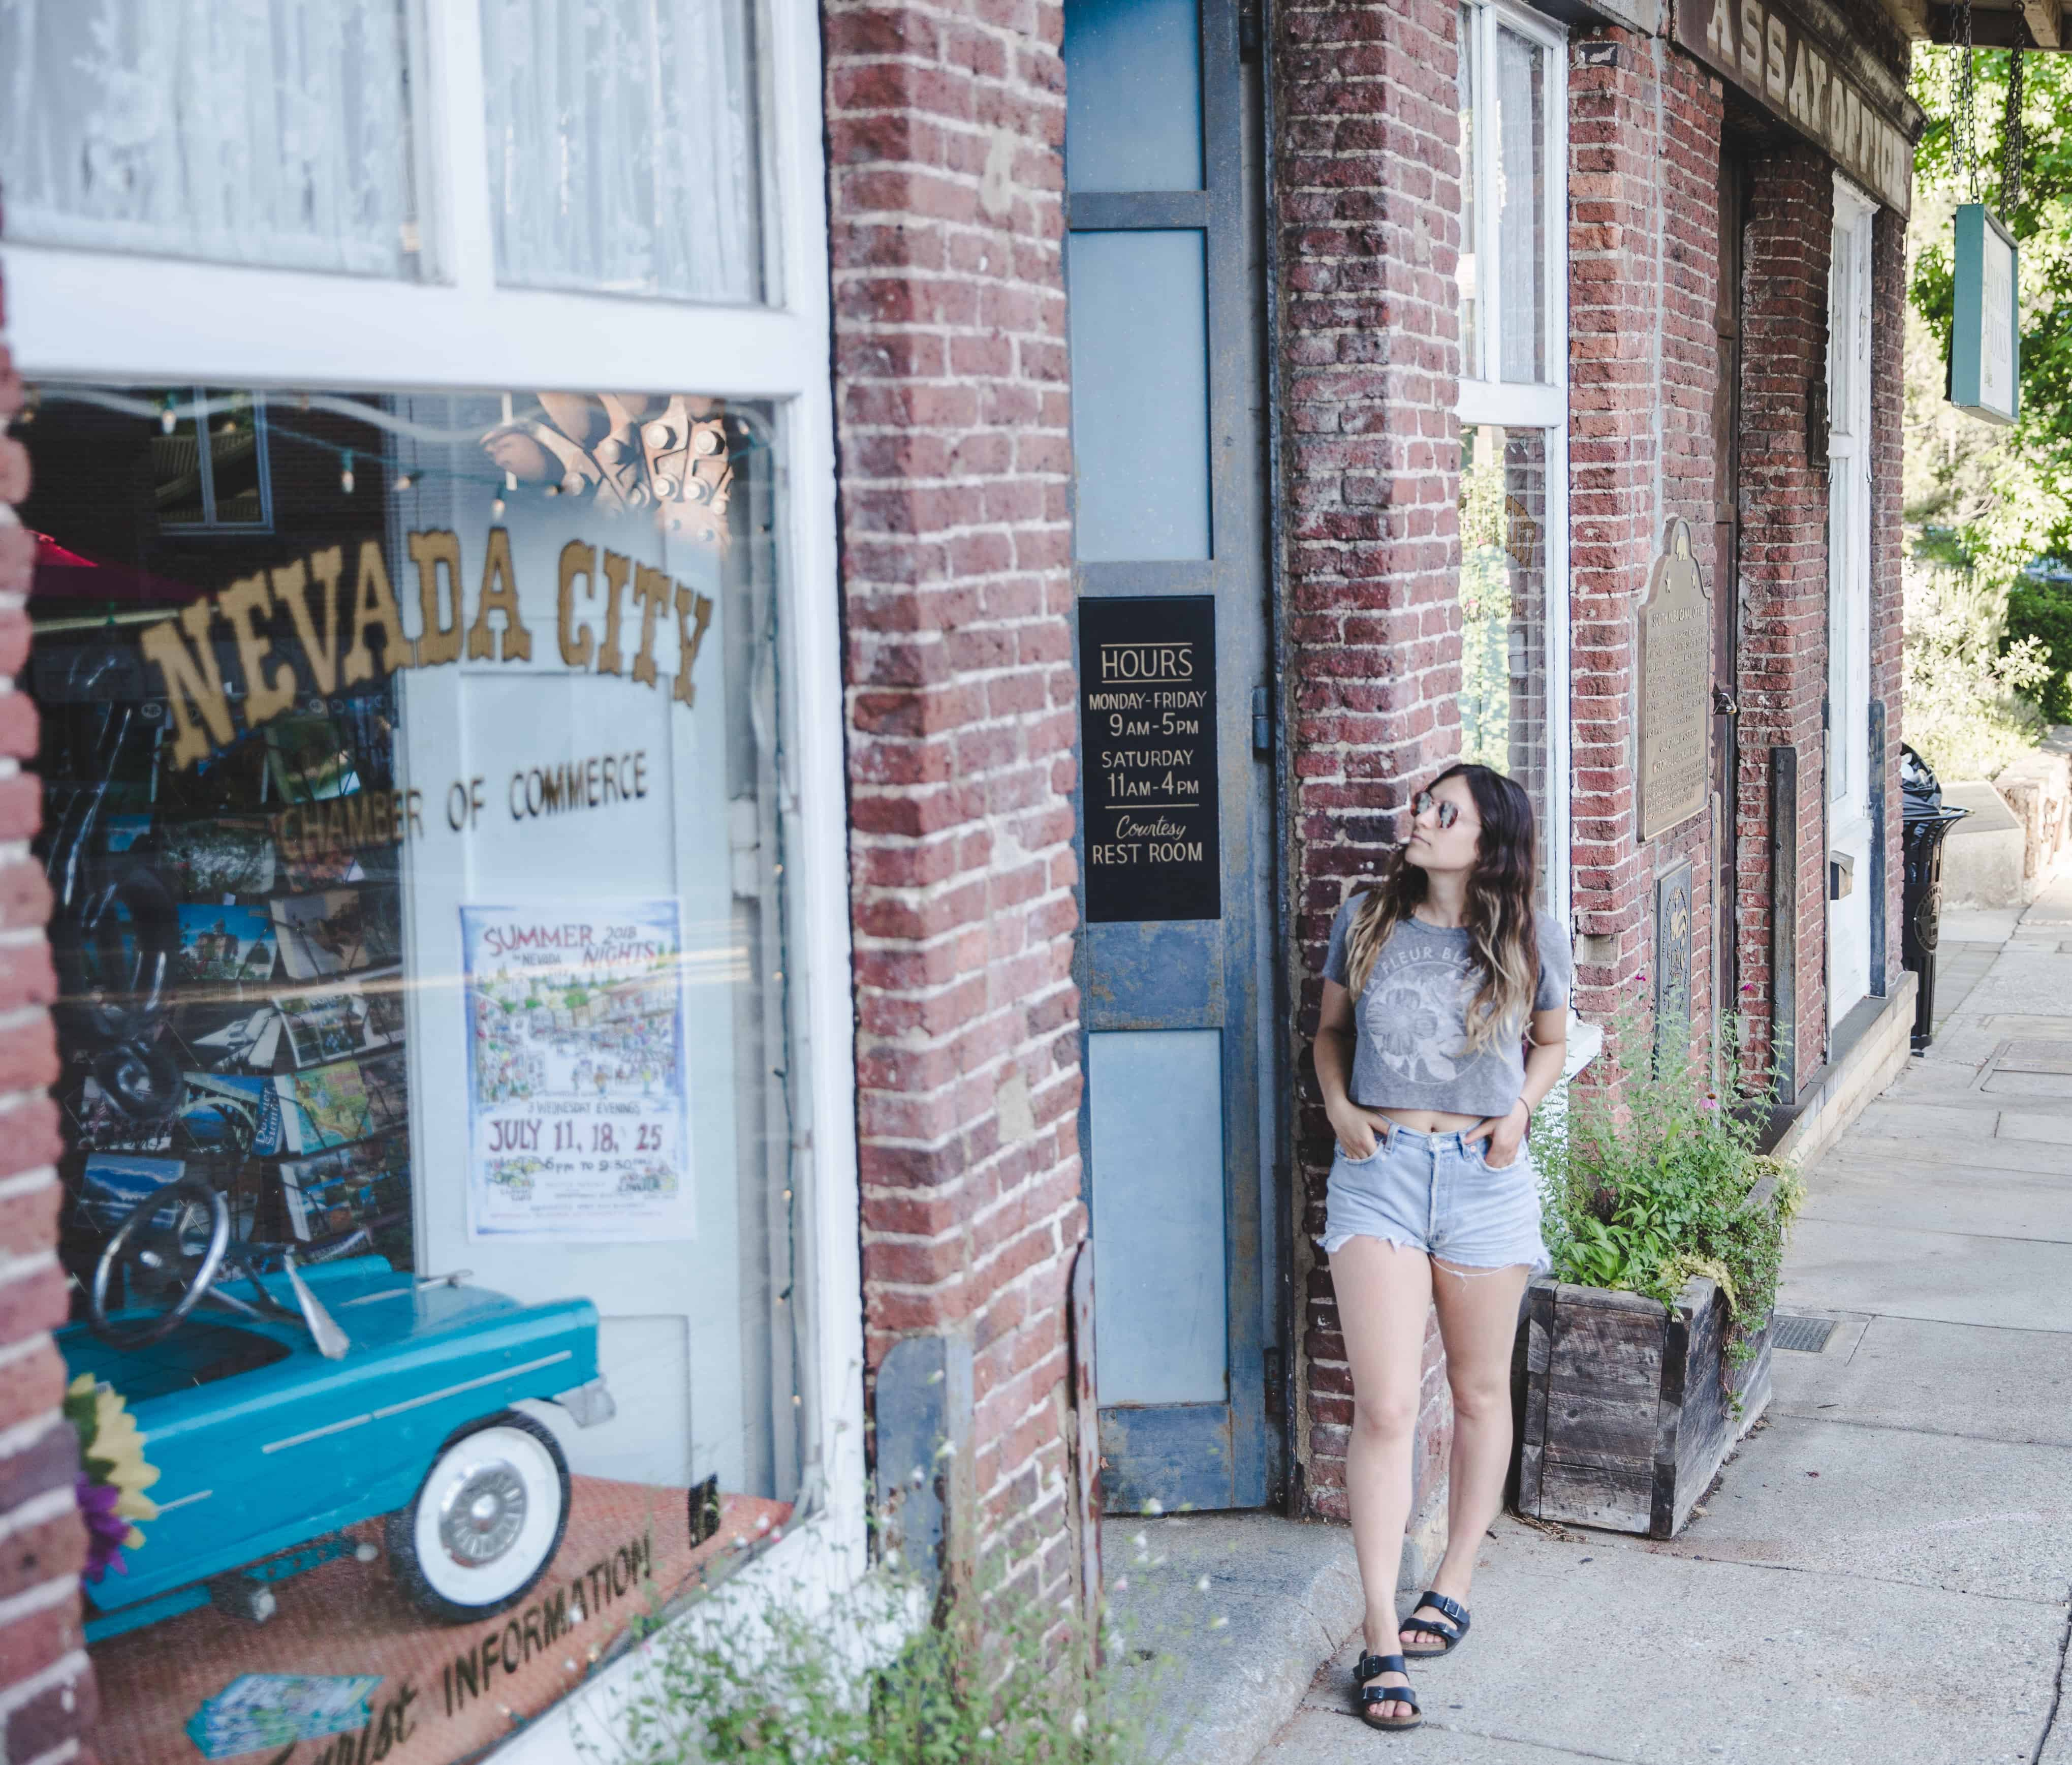 Nevada City in Gold Country in California is a great fall destination